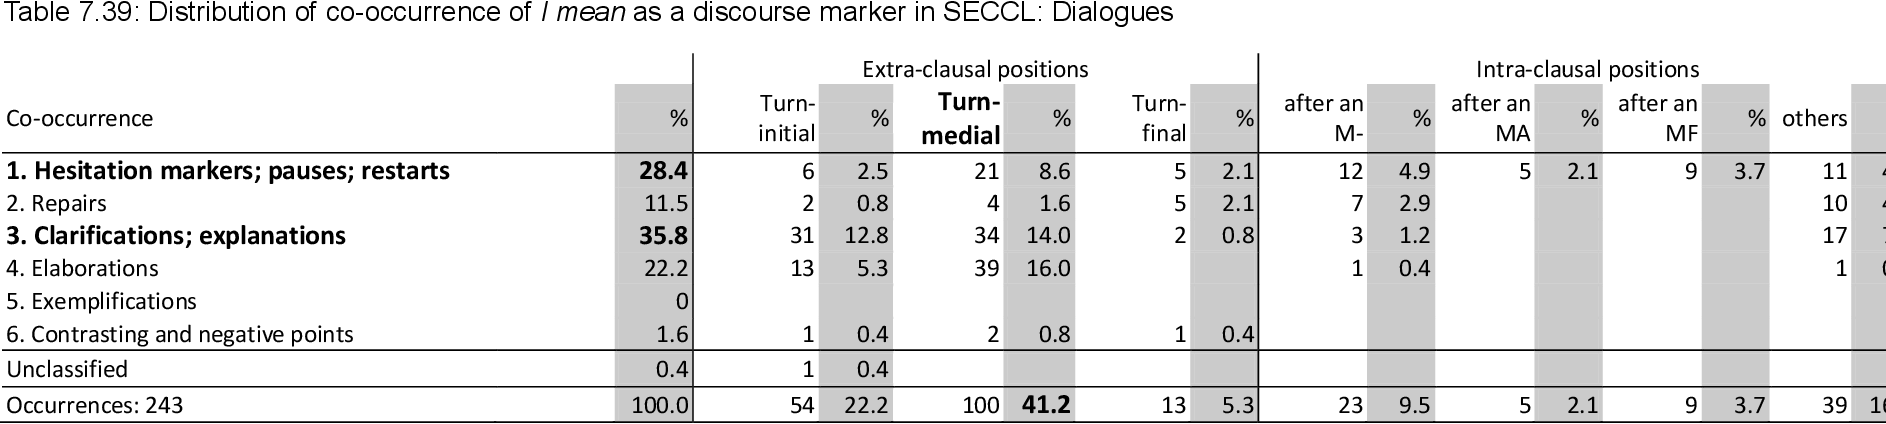 table 7.39